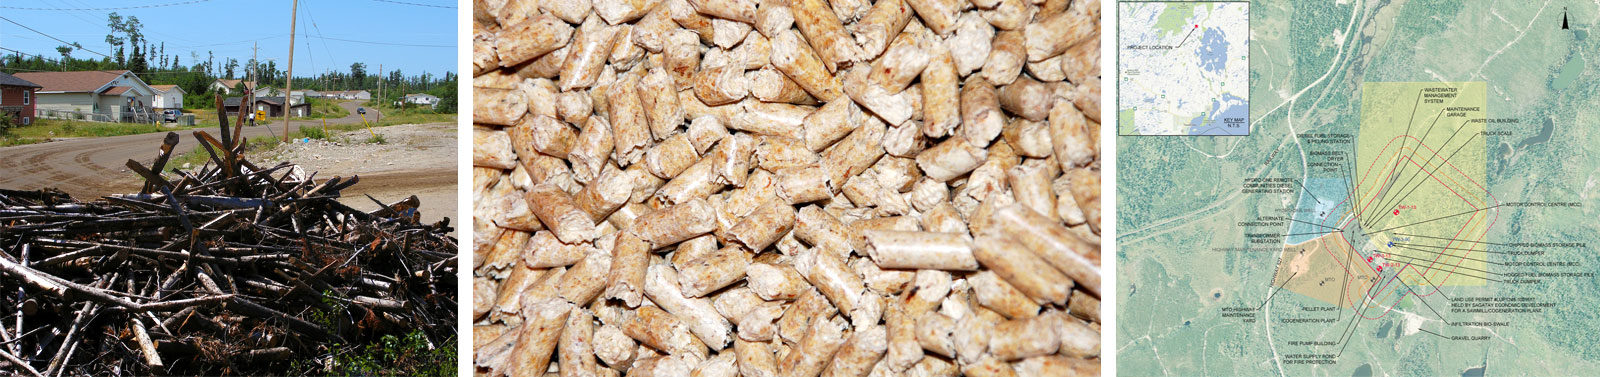 Biomass Cogeneration and Pellet Mill Project